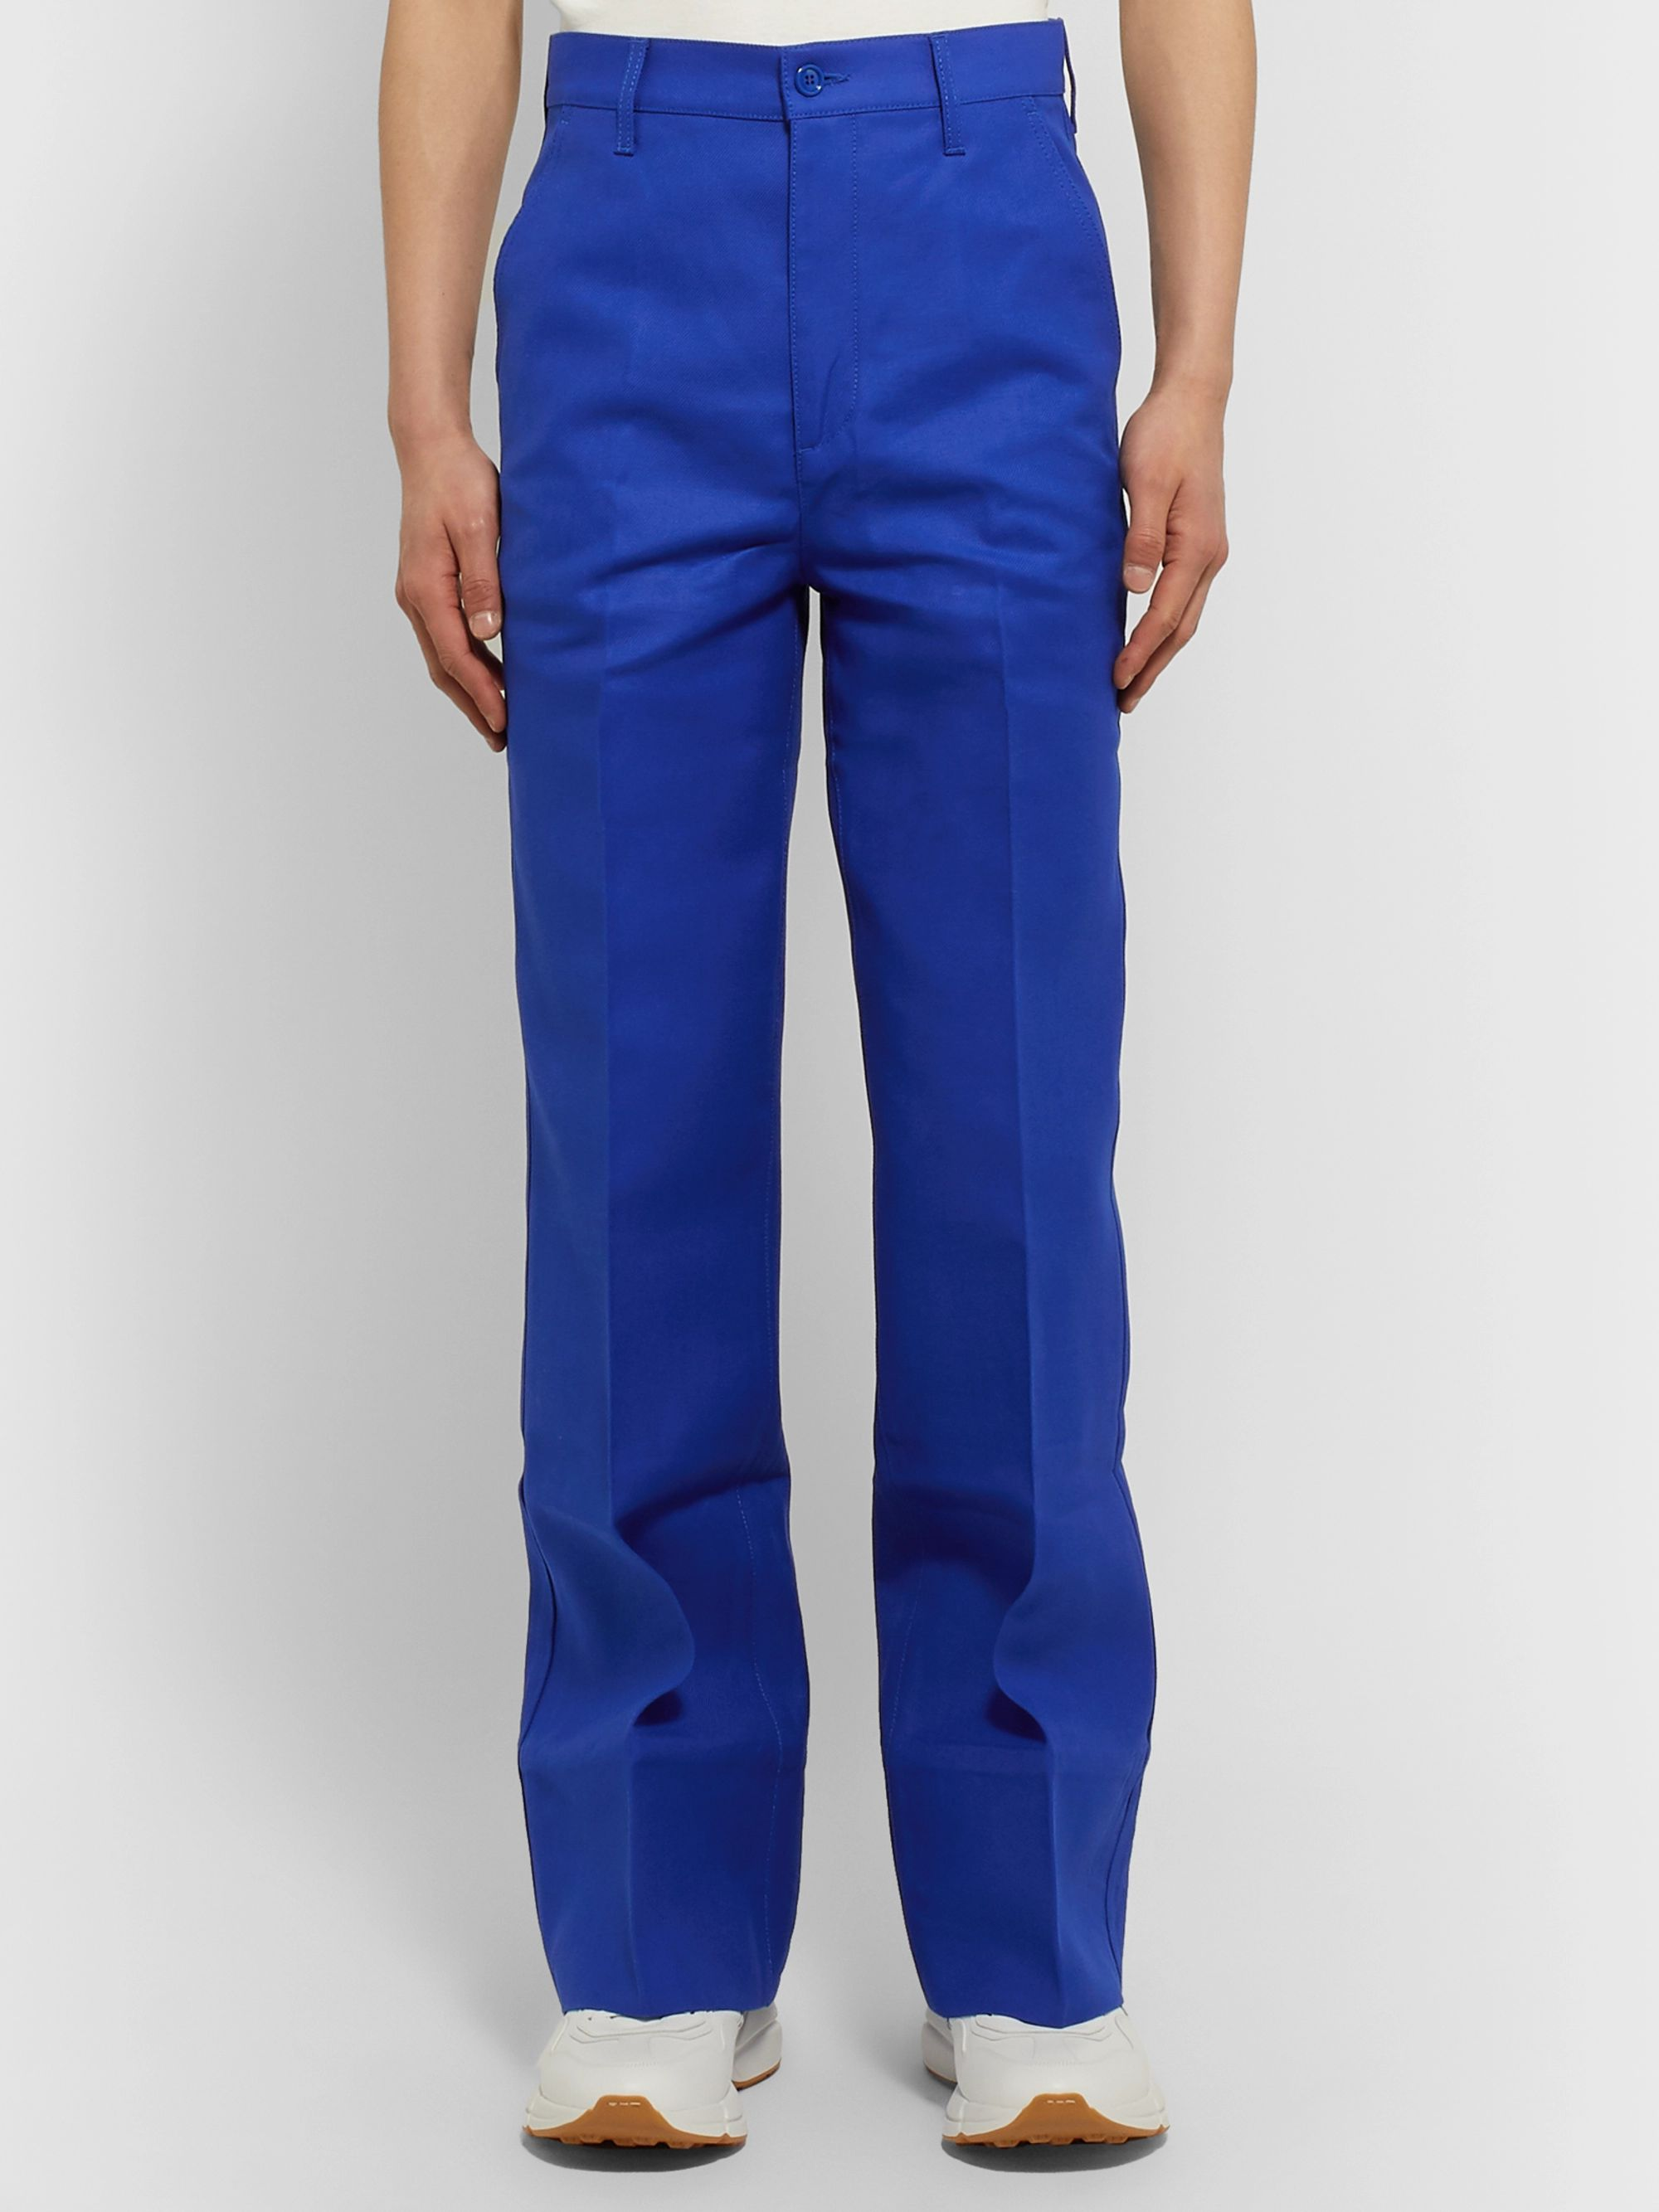 Gucci Slim-Fit Flared Cotton Trousers